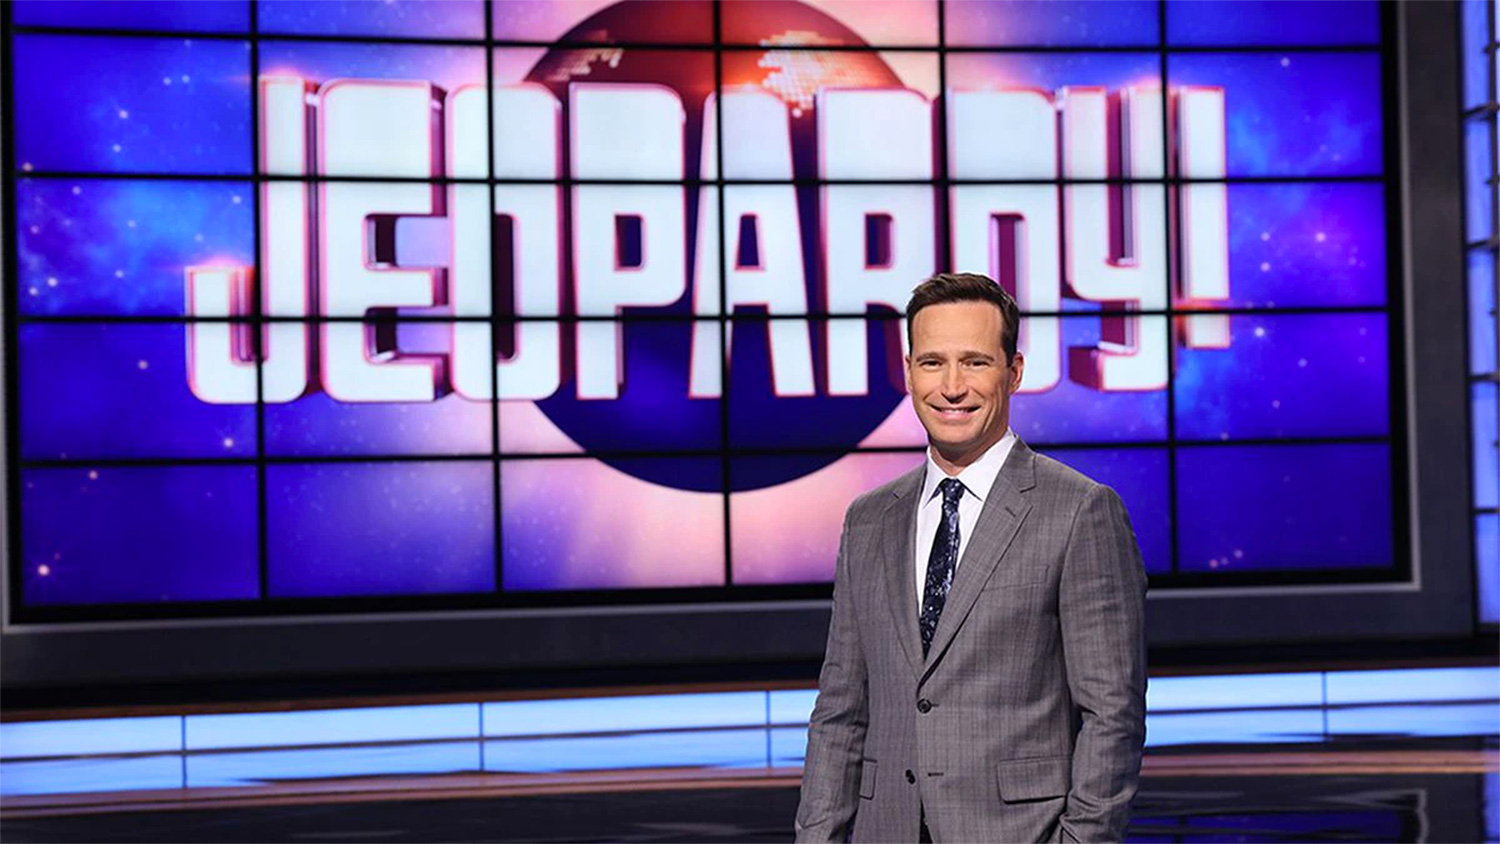 Firing in the form of  a resignation: Richards out as Jeopardy host